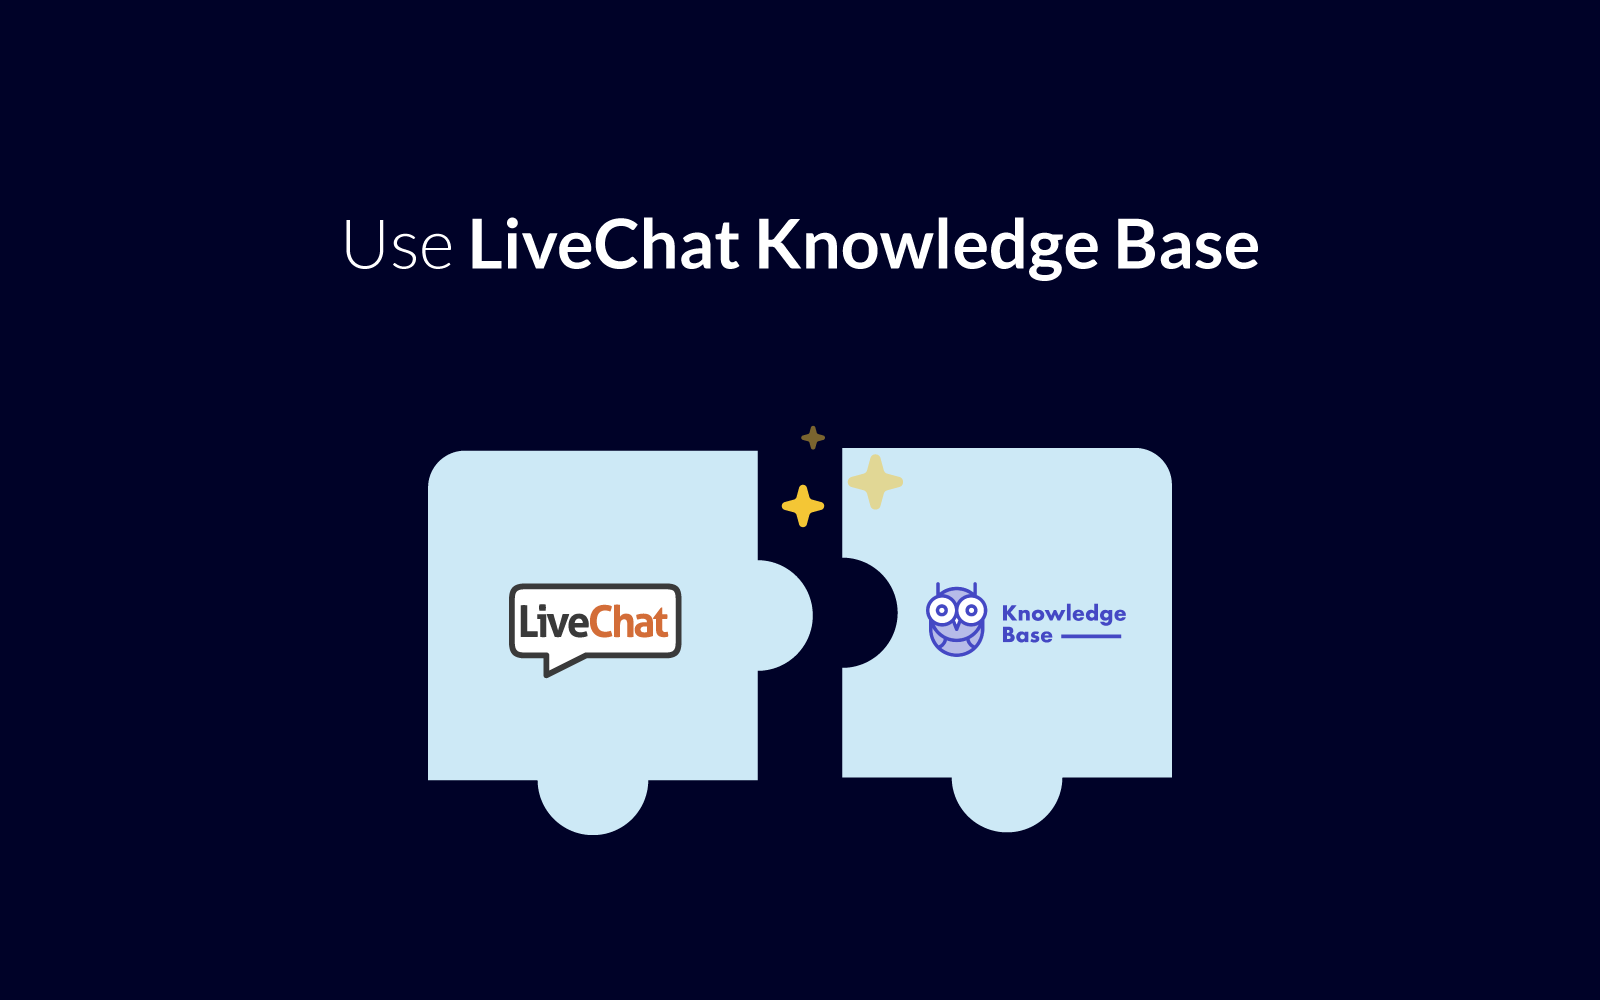 LiveChat + KnowledgeBase